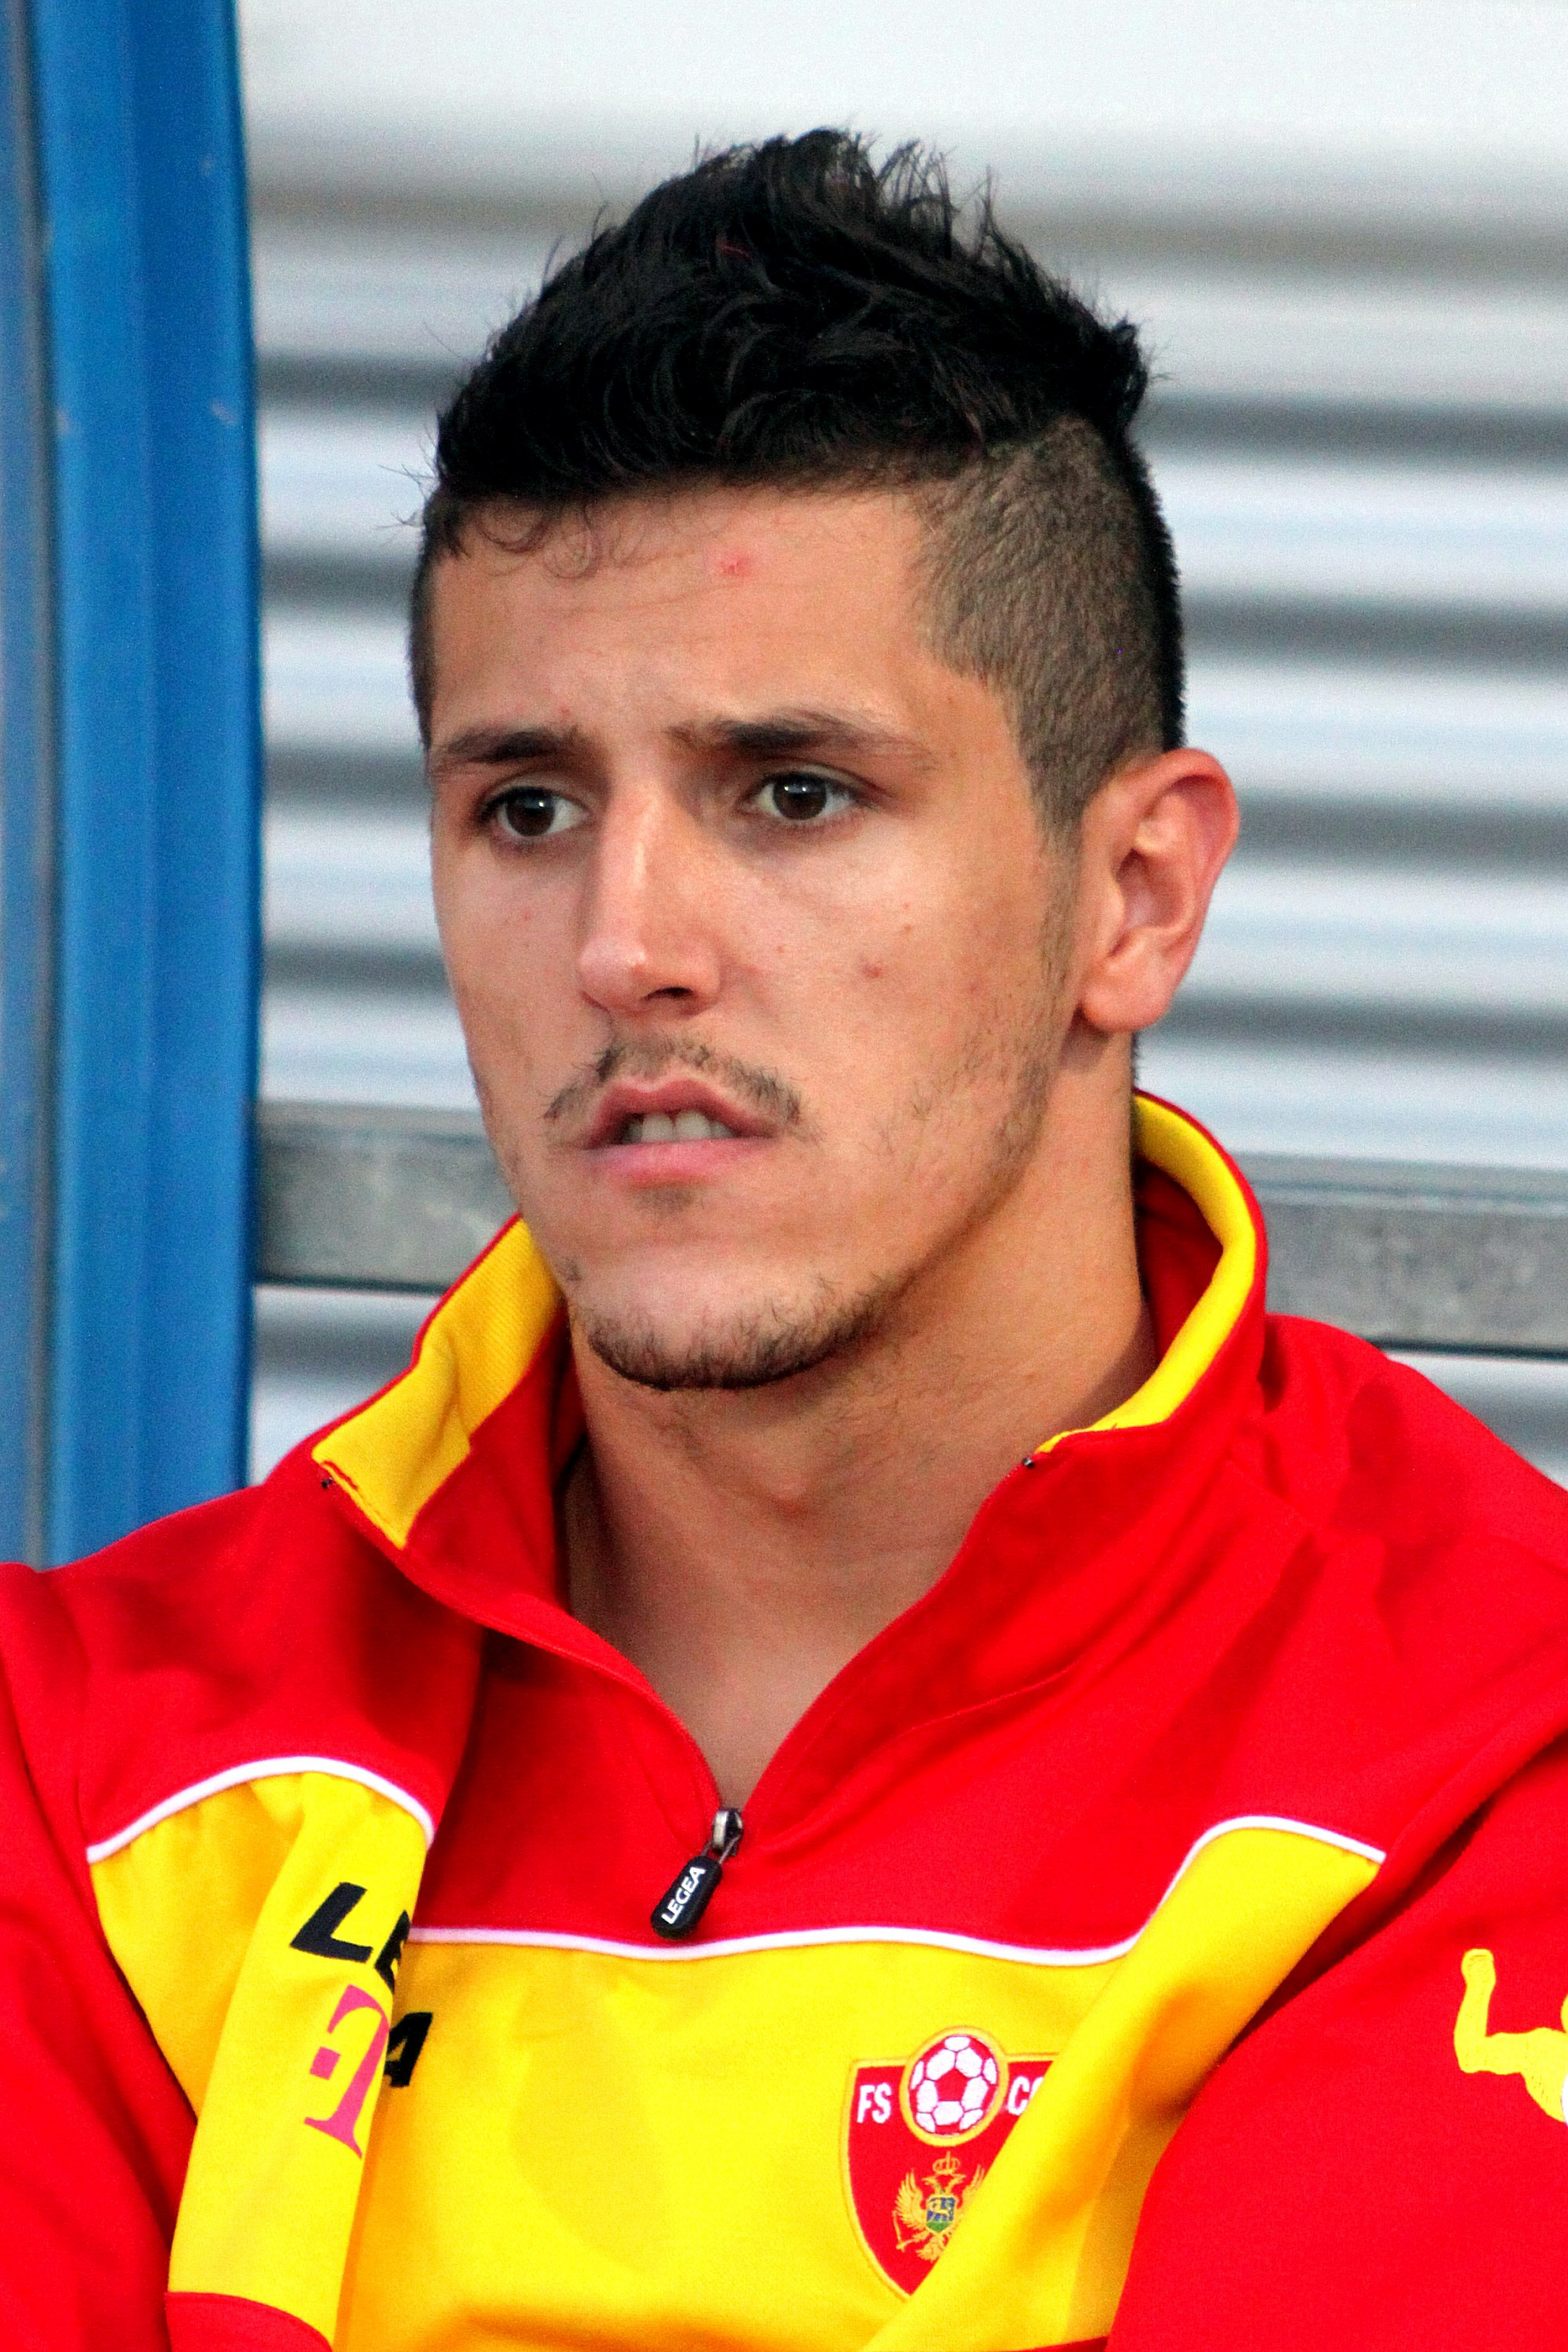 The 28-year old son of father (?) and mother(?) Stevan Jovetic in 2018 photo. Stevan Jovetic earned a  million dollar salary - leaving the net worth at 21 million in 2018